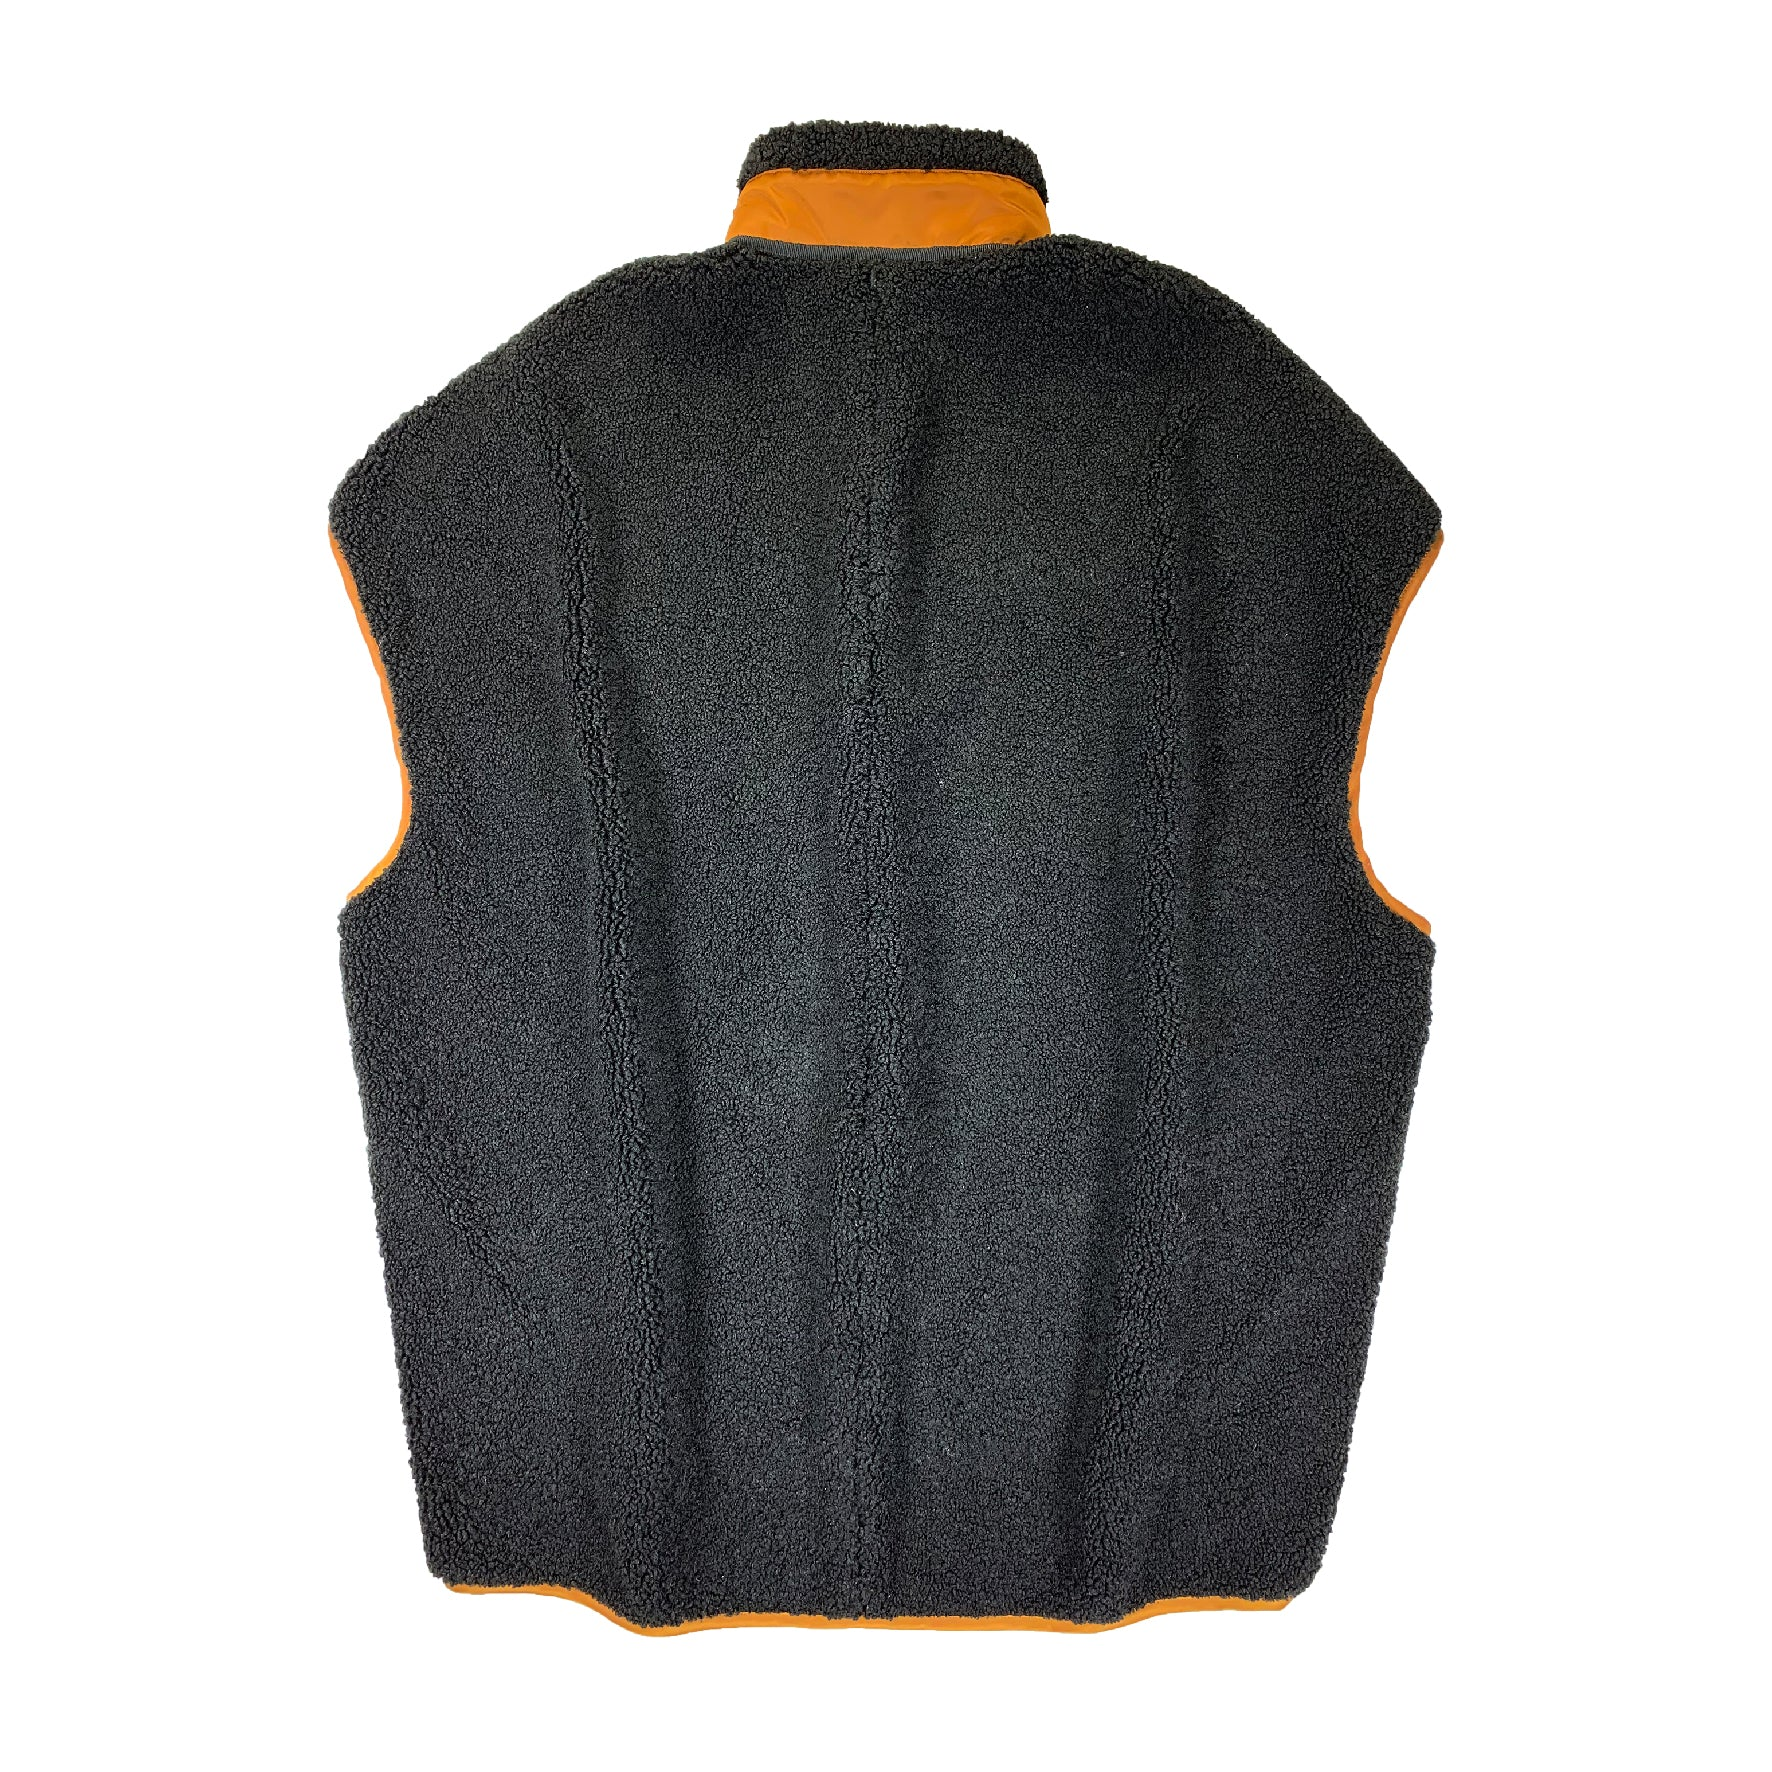 Boa Coccon Zip-Up Vest BLACK